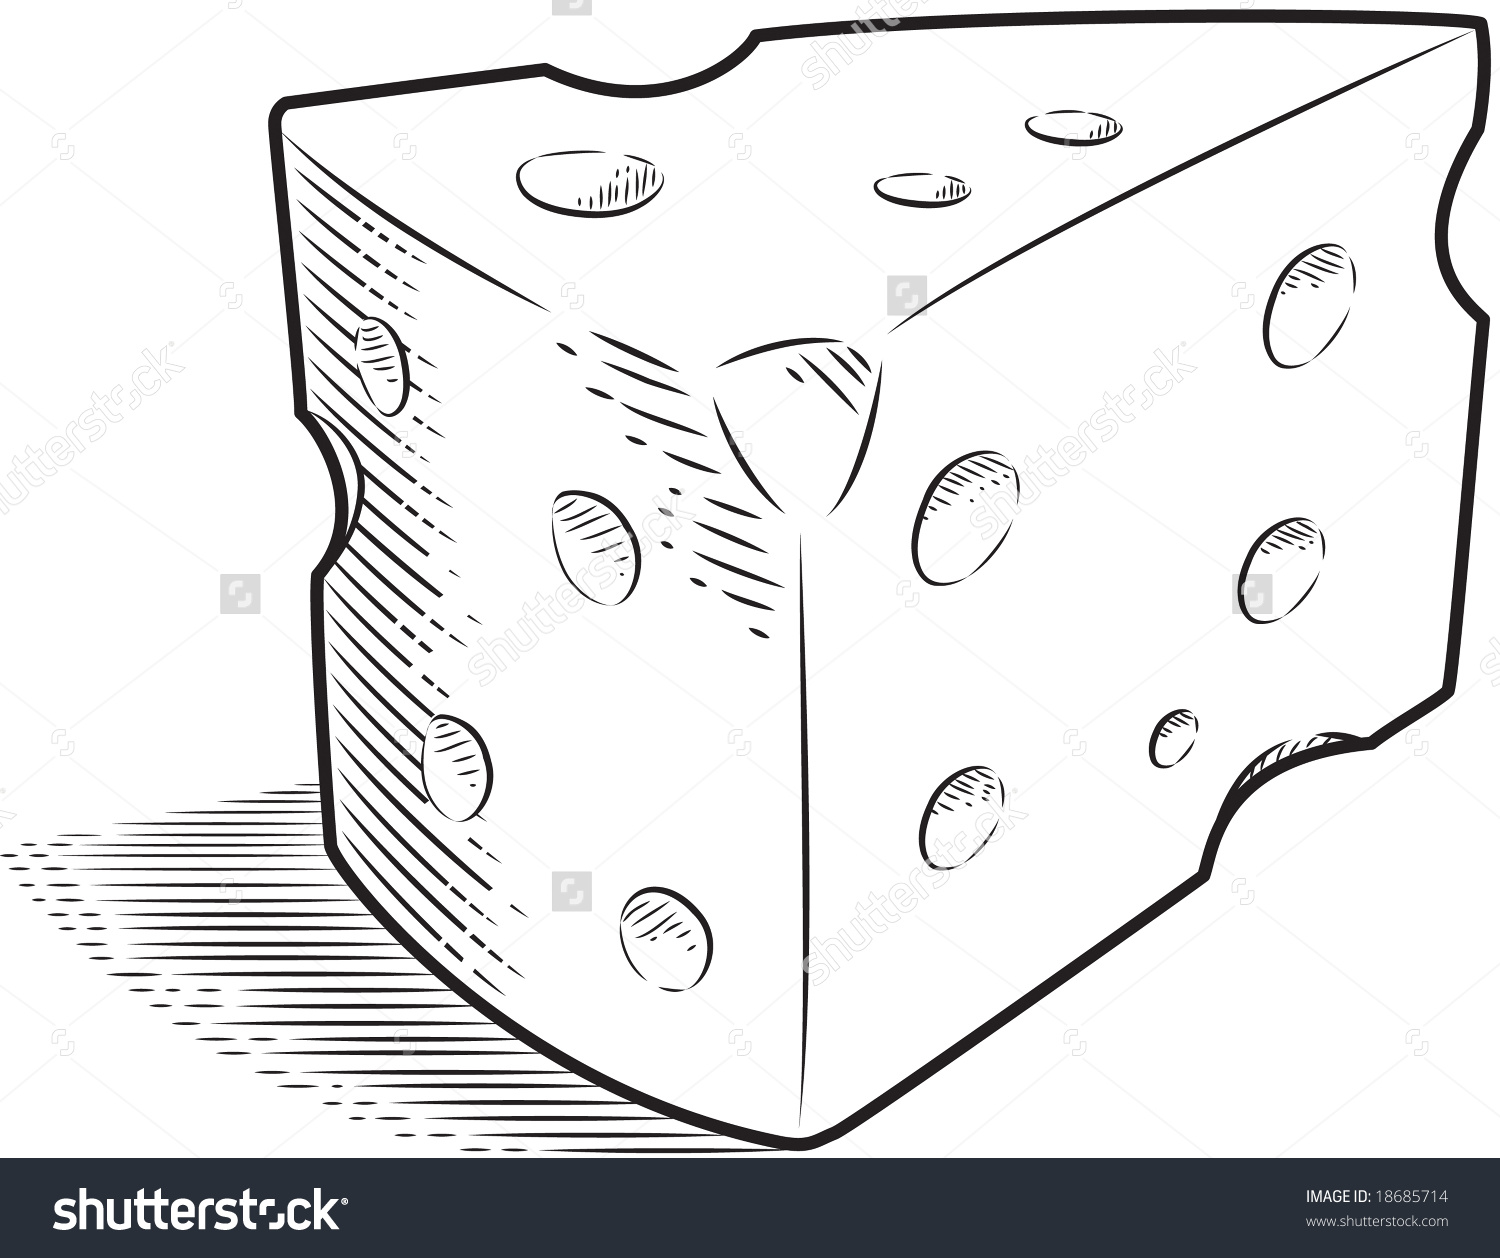 Cheese clipart outline Clipart black and cheese Swiss